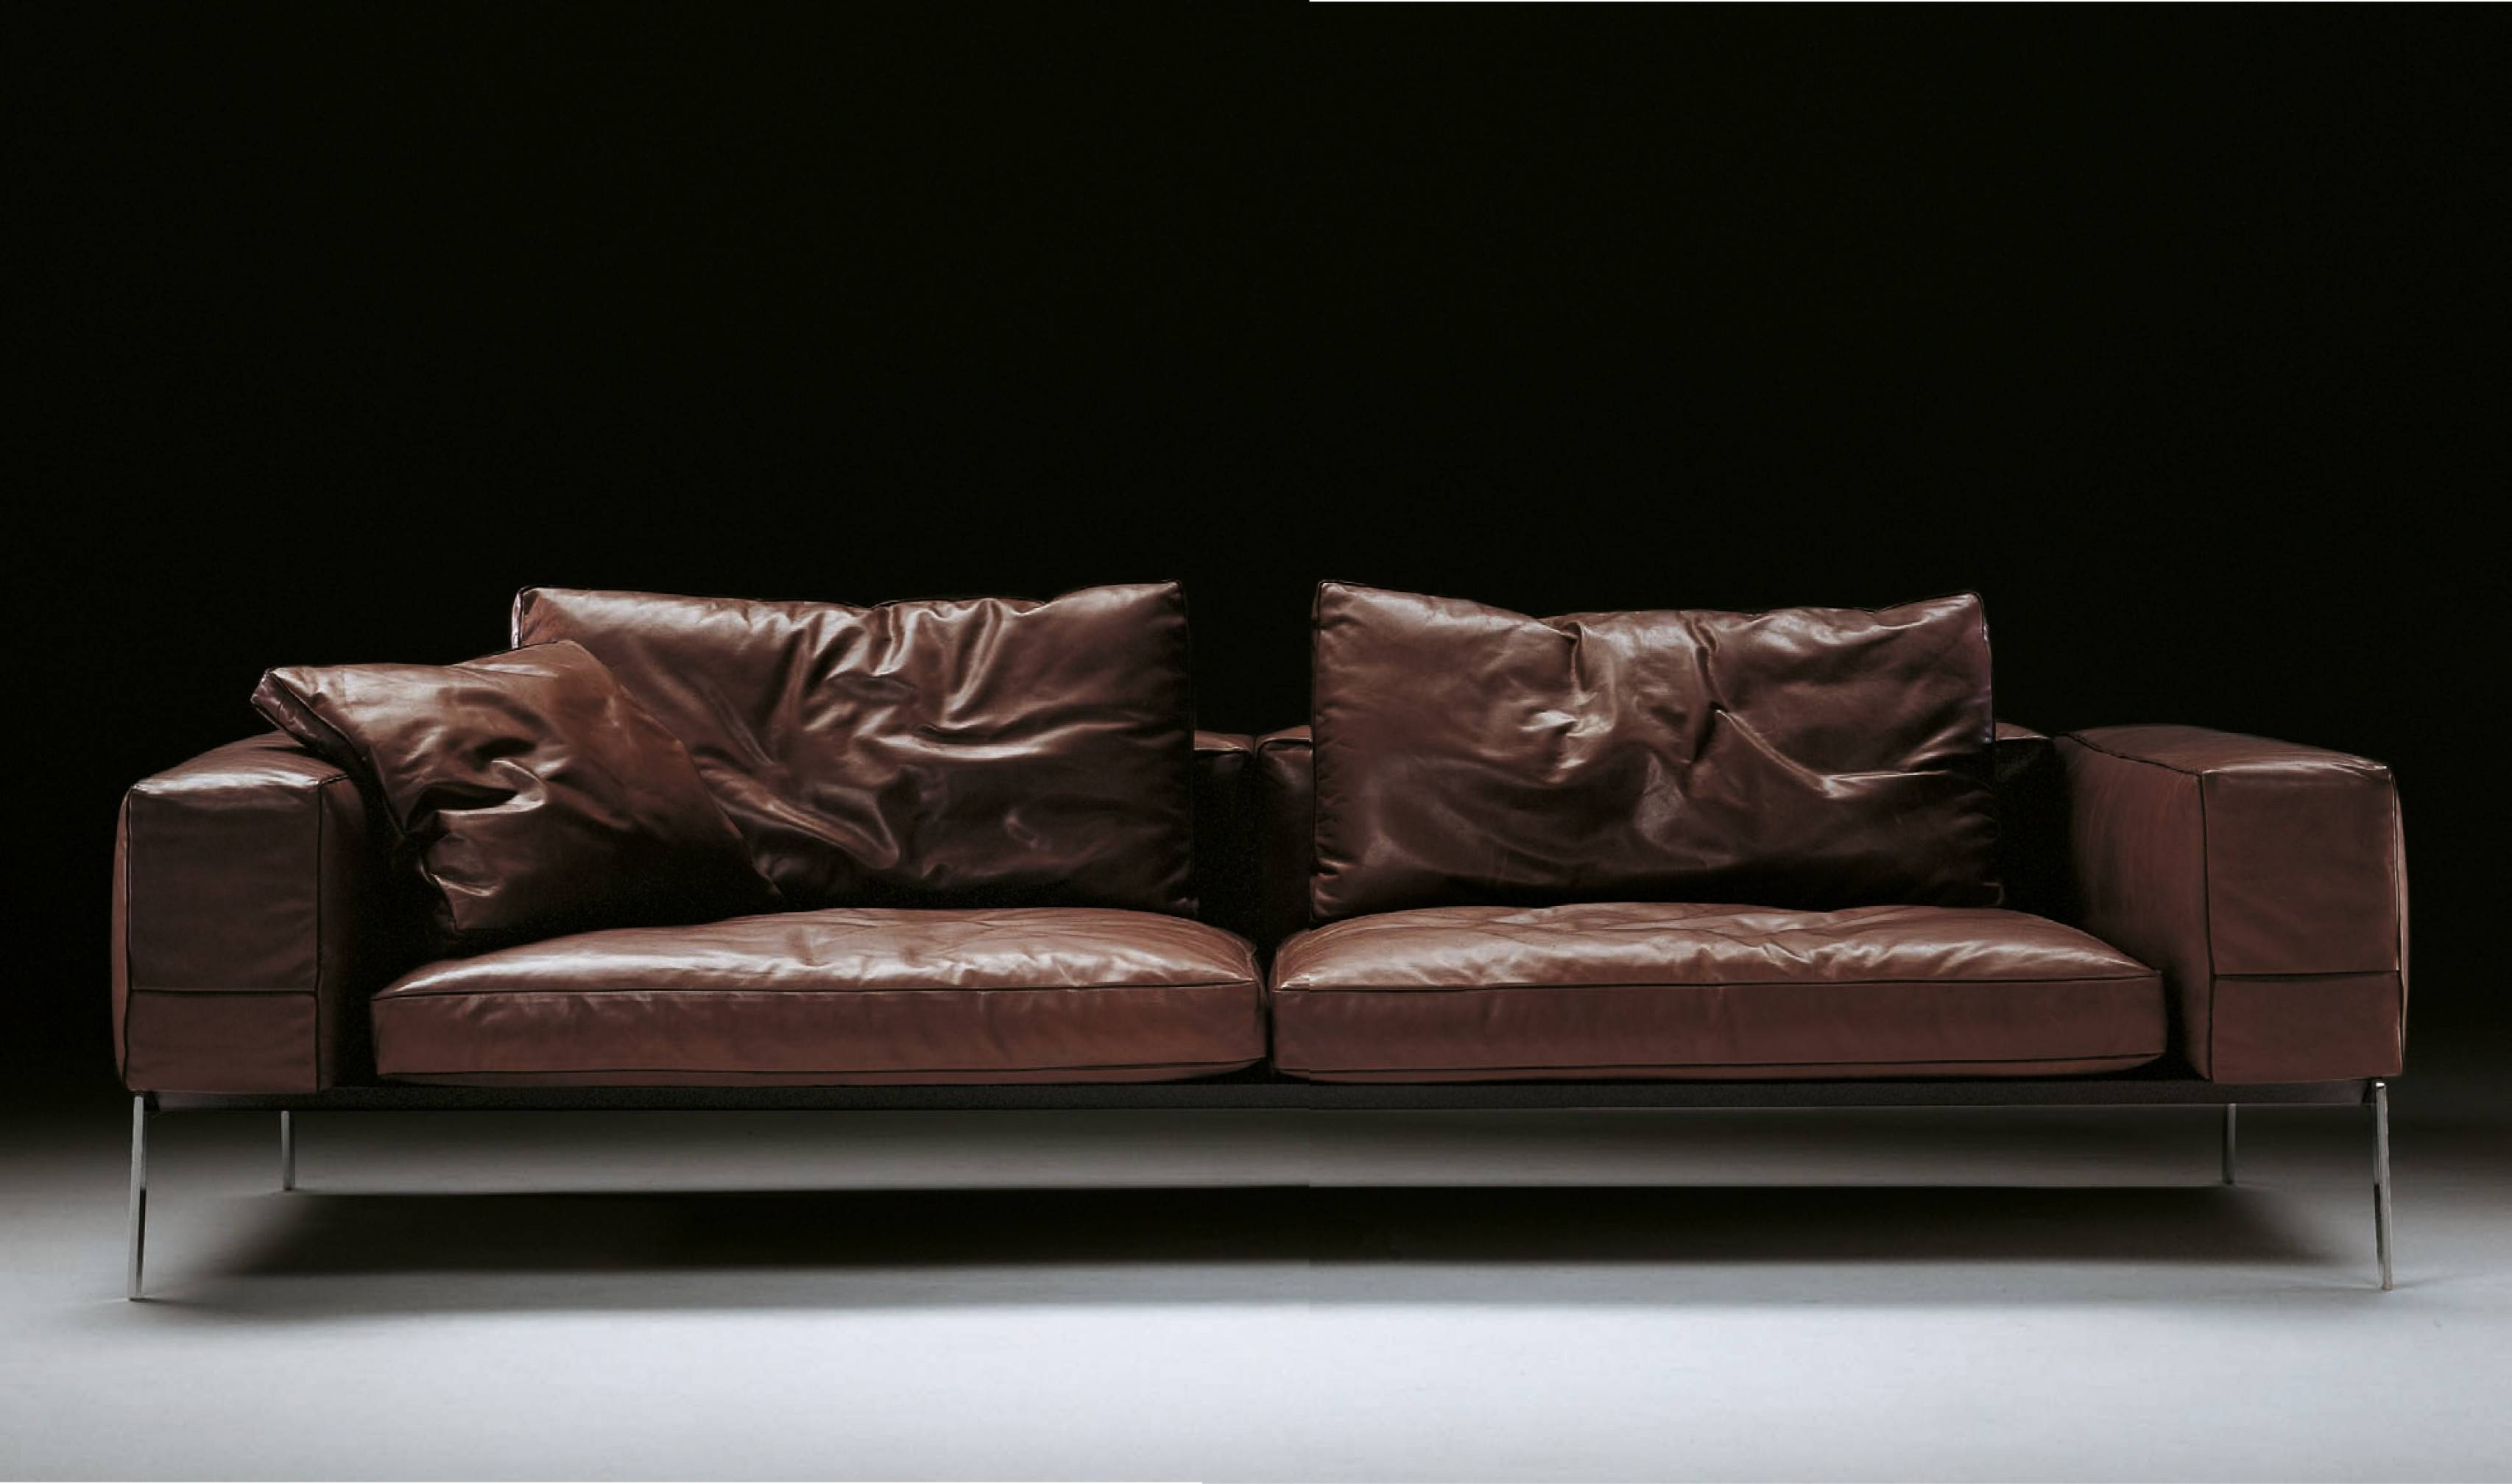 Flexform Lifesteel Sofa - Flexform Furniture - Leather Sofas inside Flexform Sofas (Image 9 of 25)